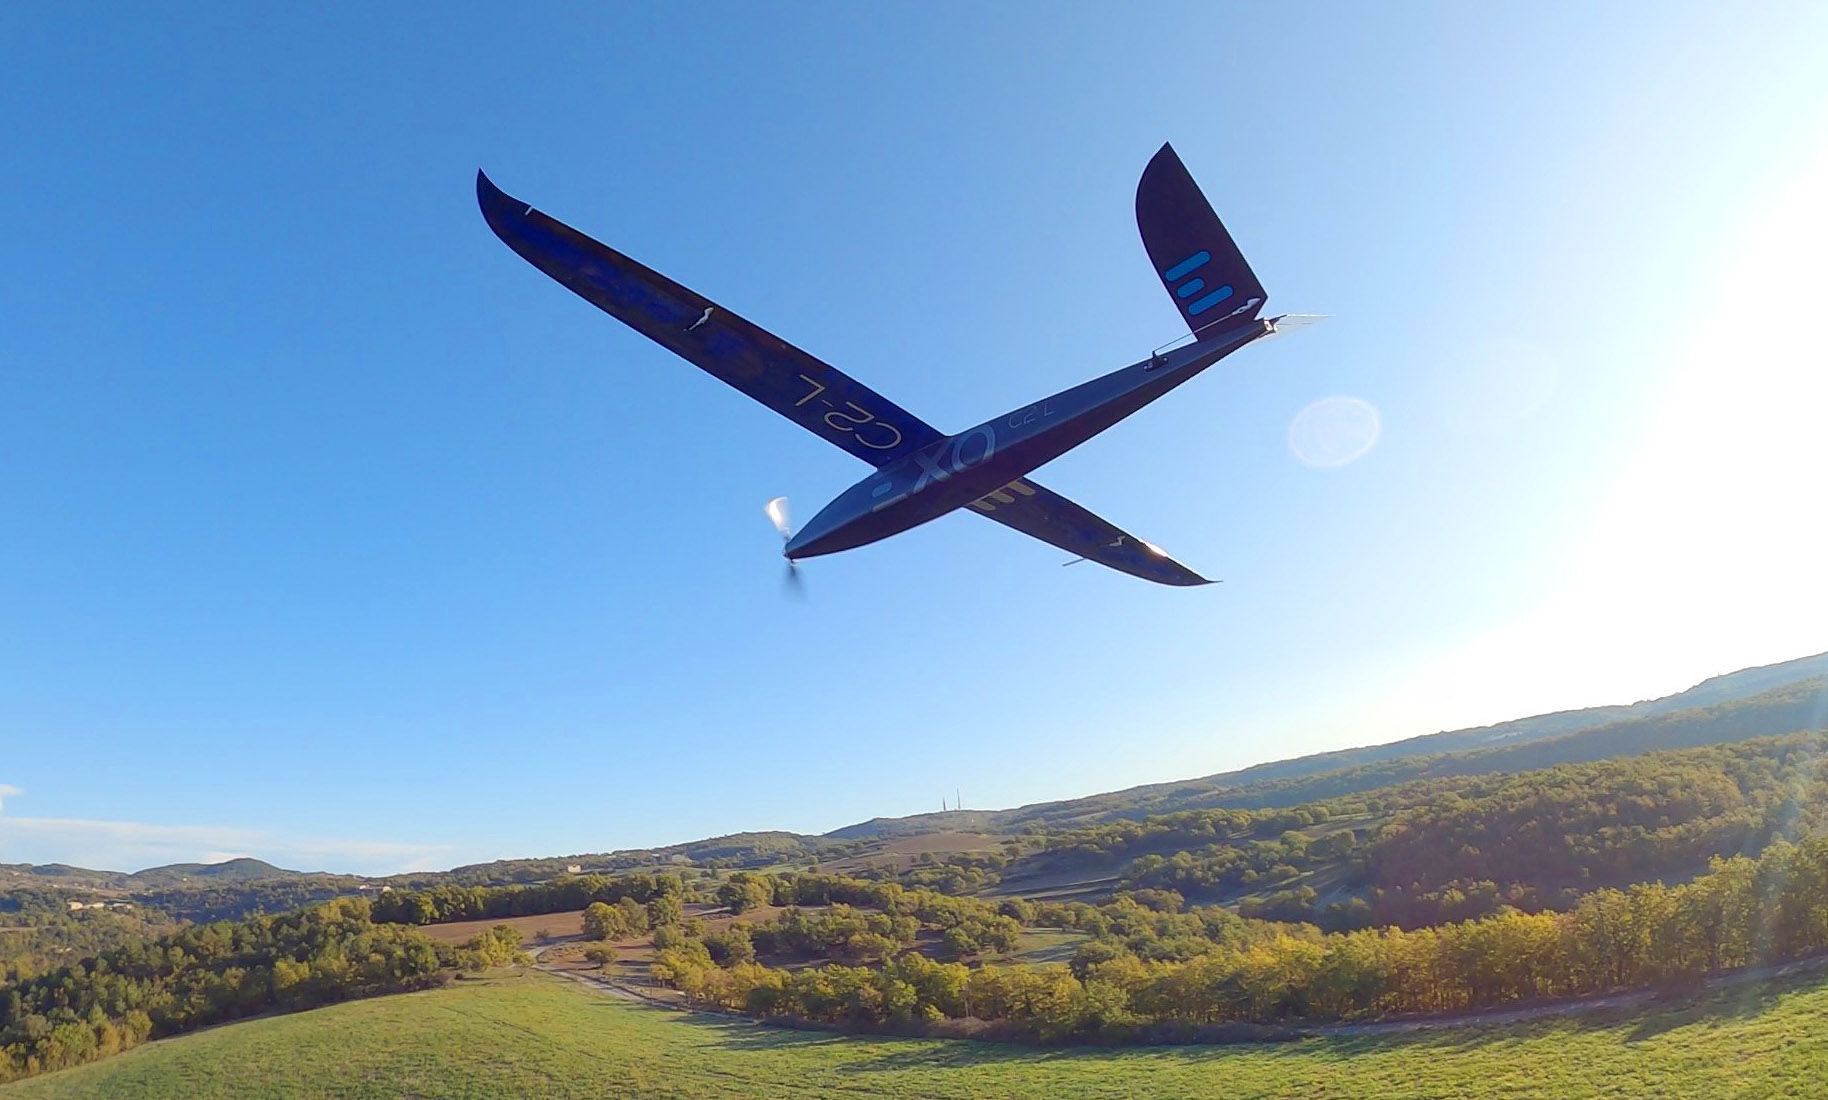 CATUAV develops new mini-Drone